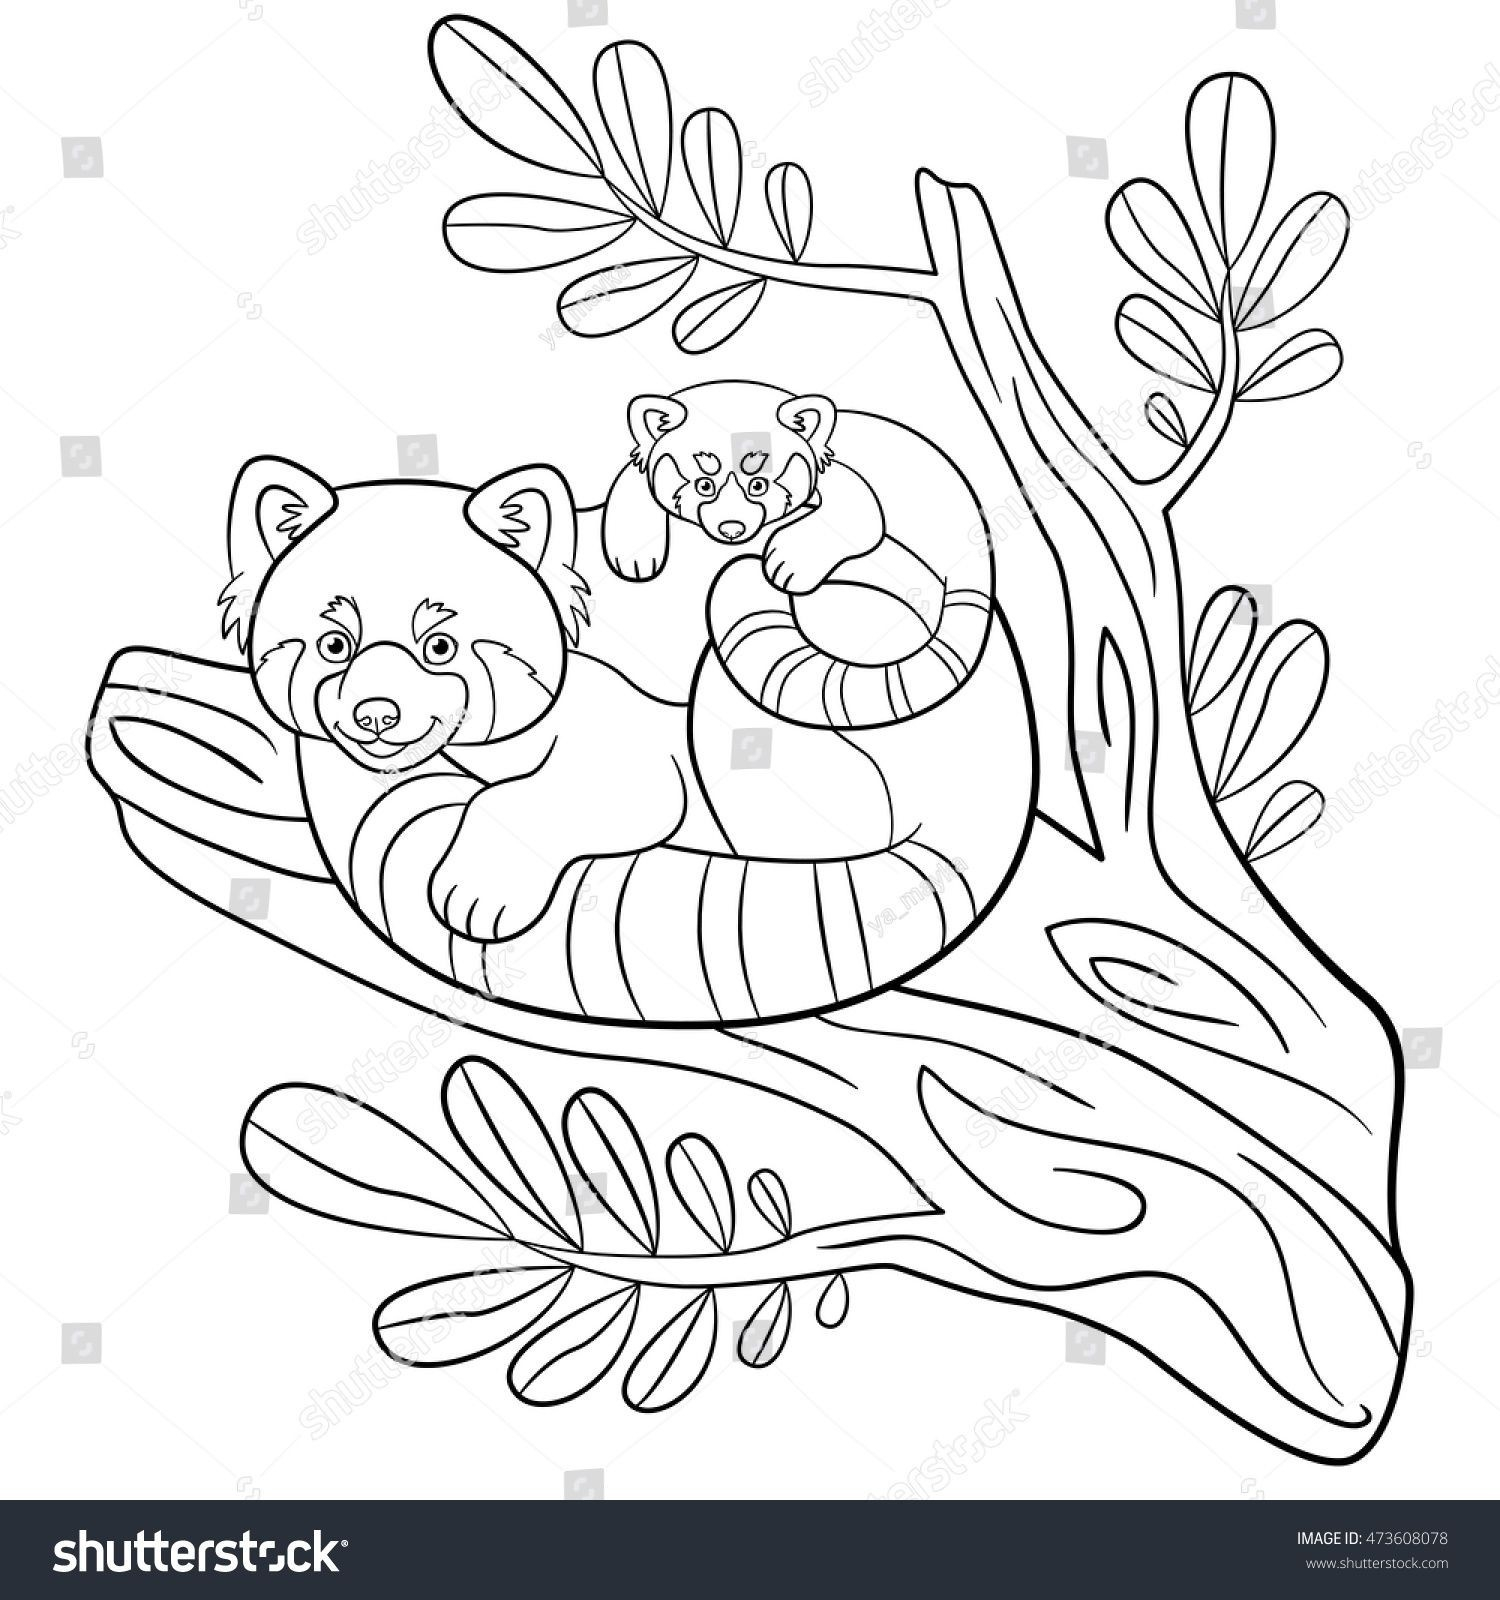 National Geographic Kids Coloring Pages  Collection 7q - Free For kids